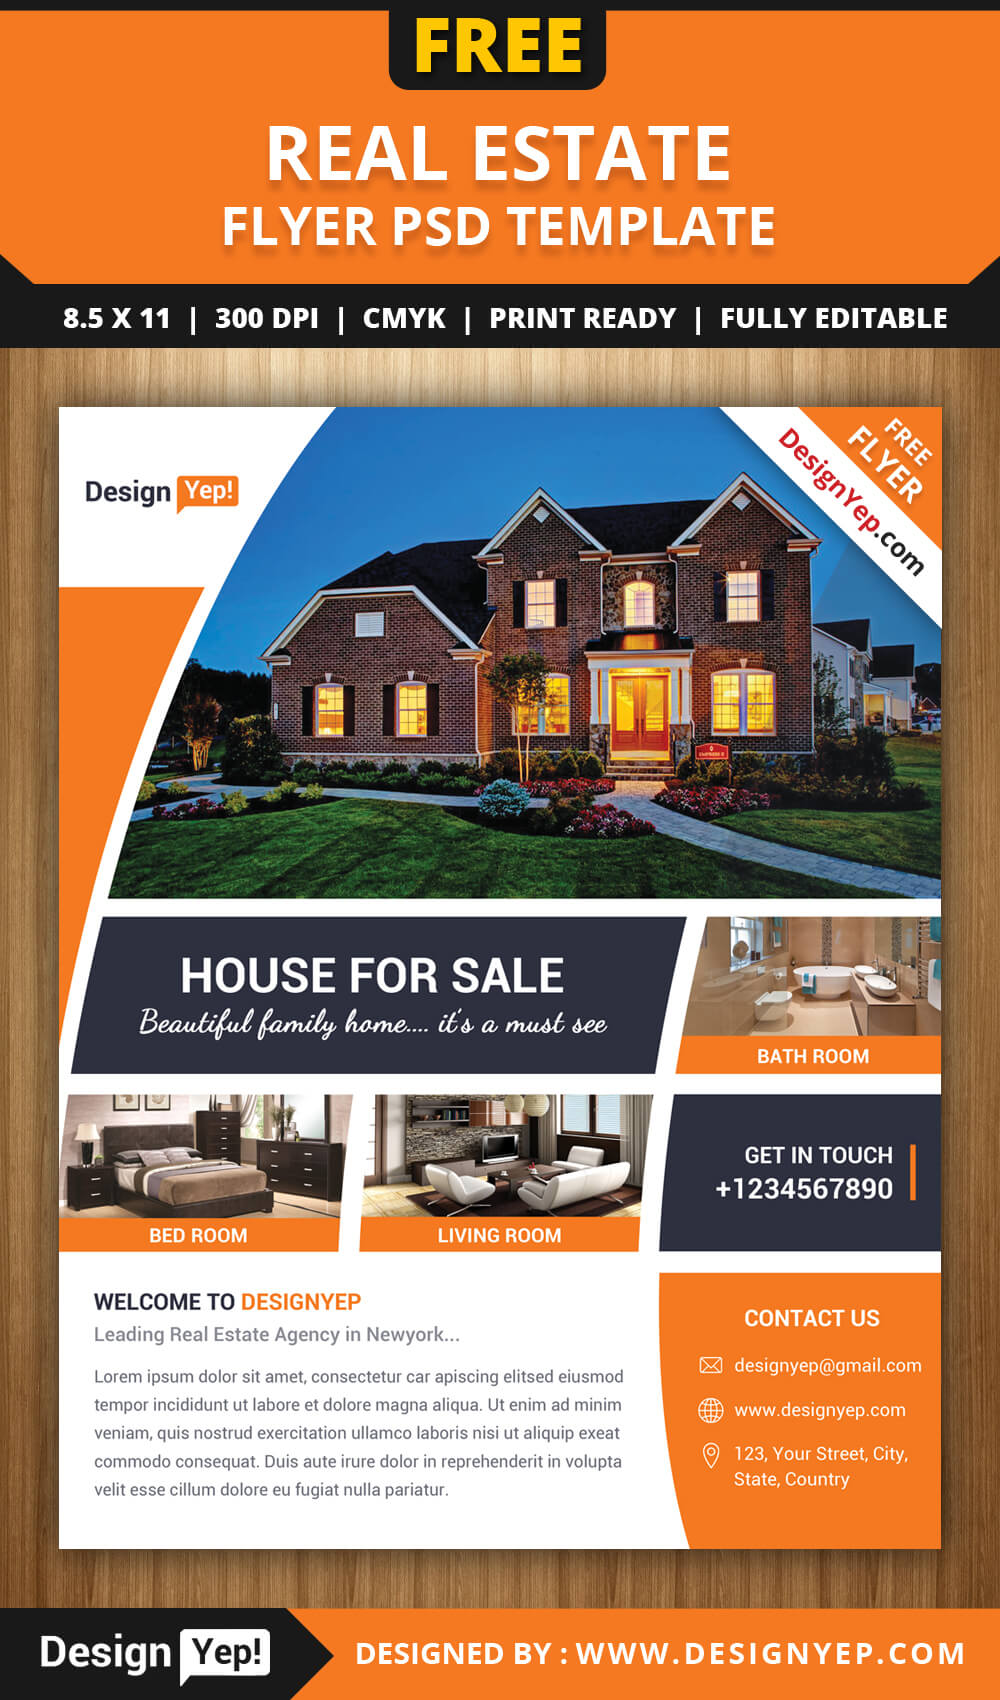 Free Real Estate Flyer Psd Template - Designyep pertaining to Real Estate Brochure Templates Psd Free Download